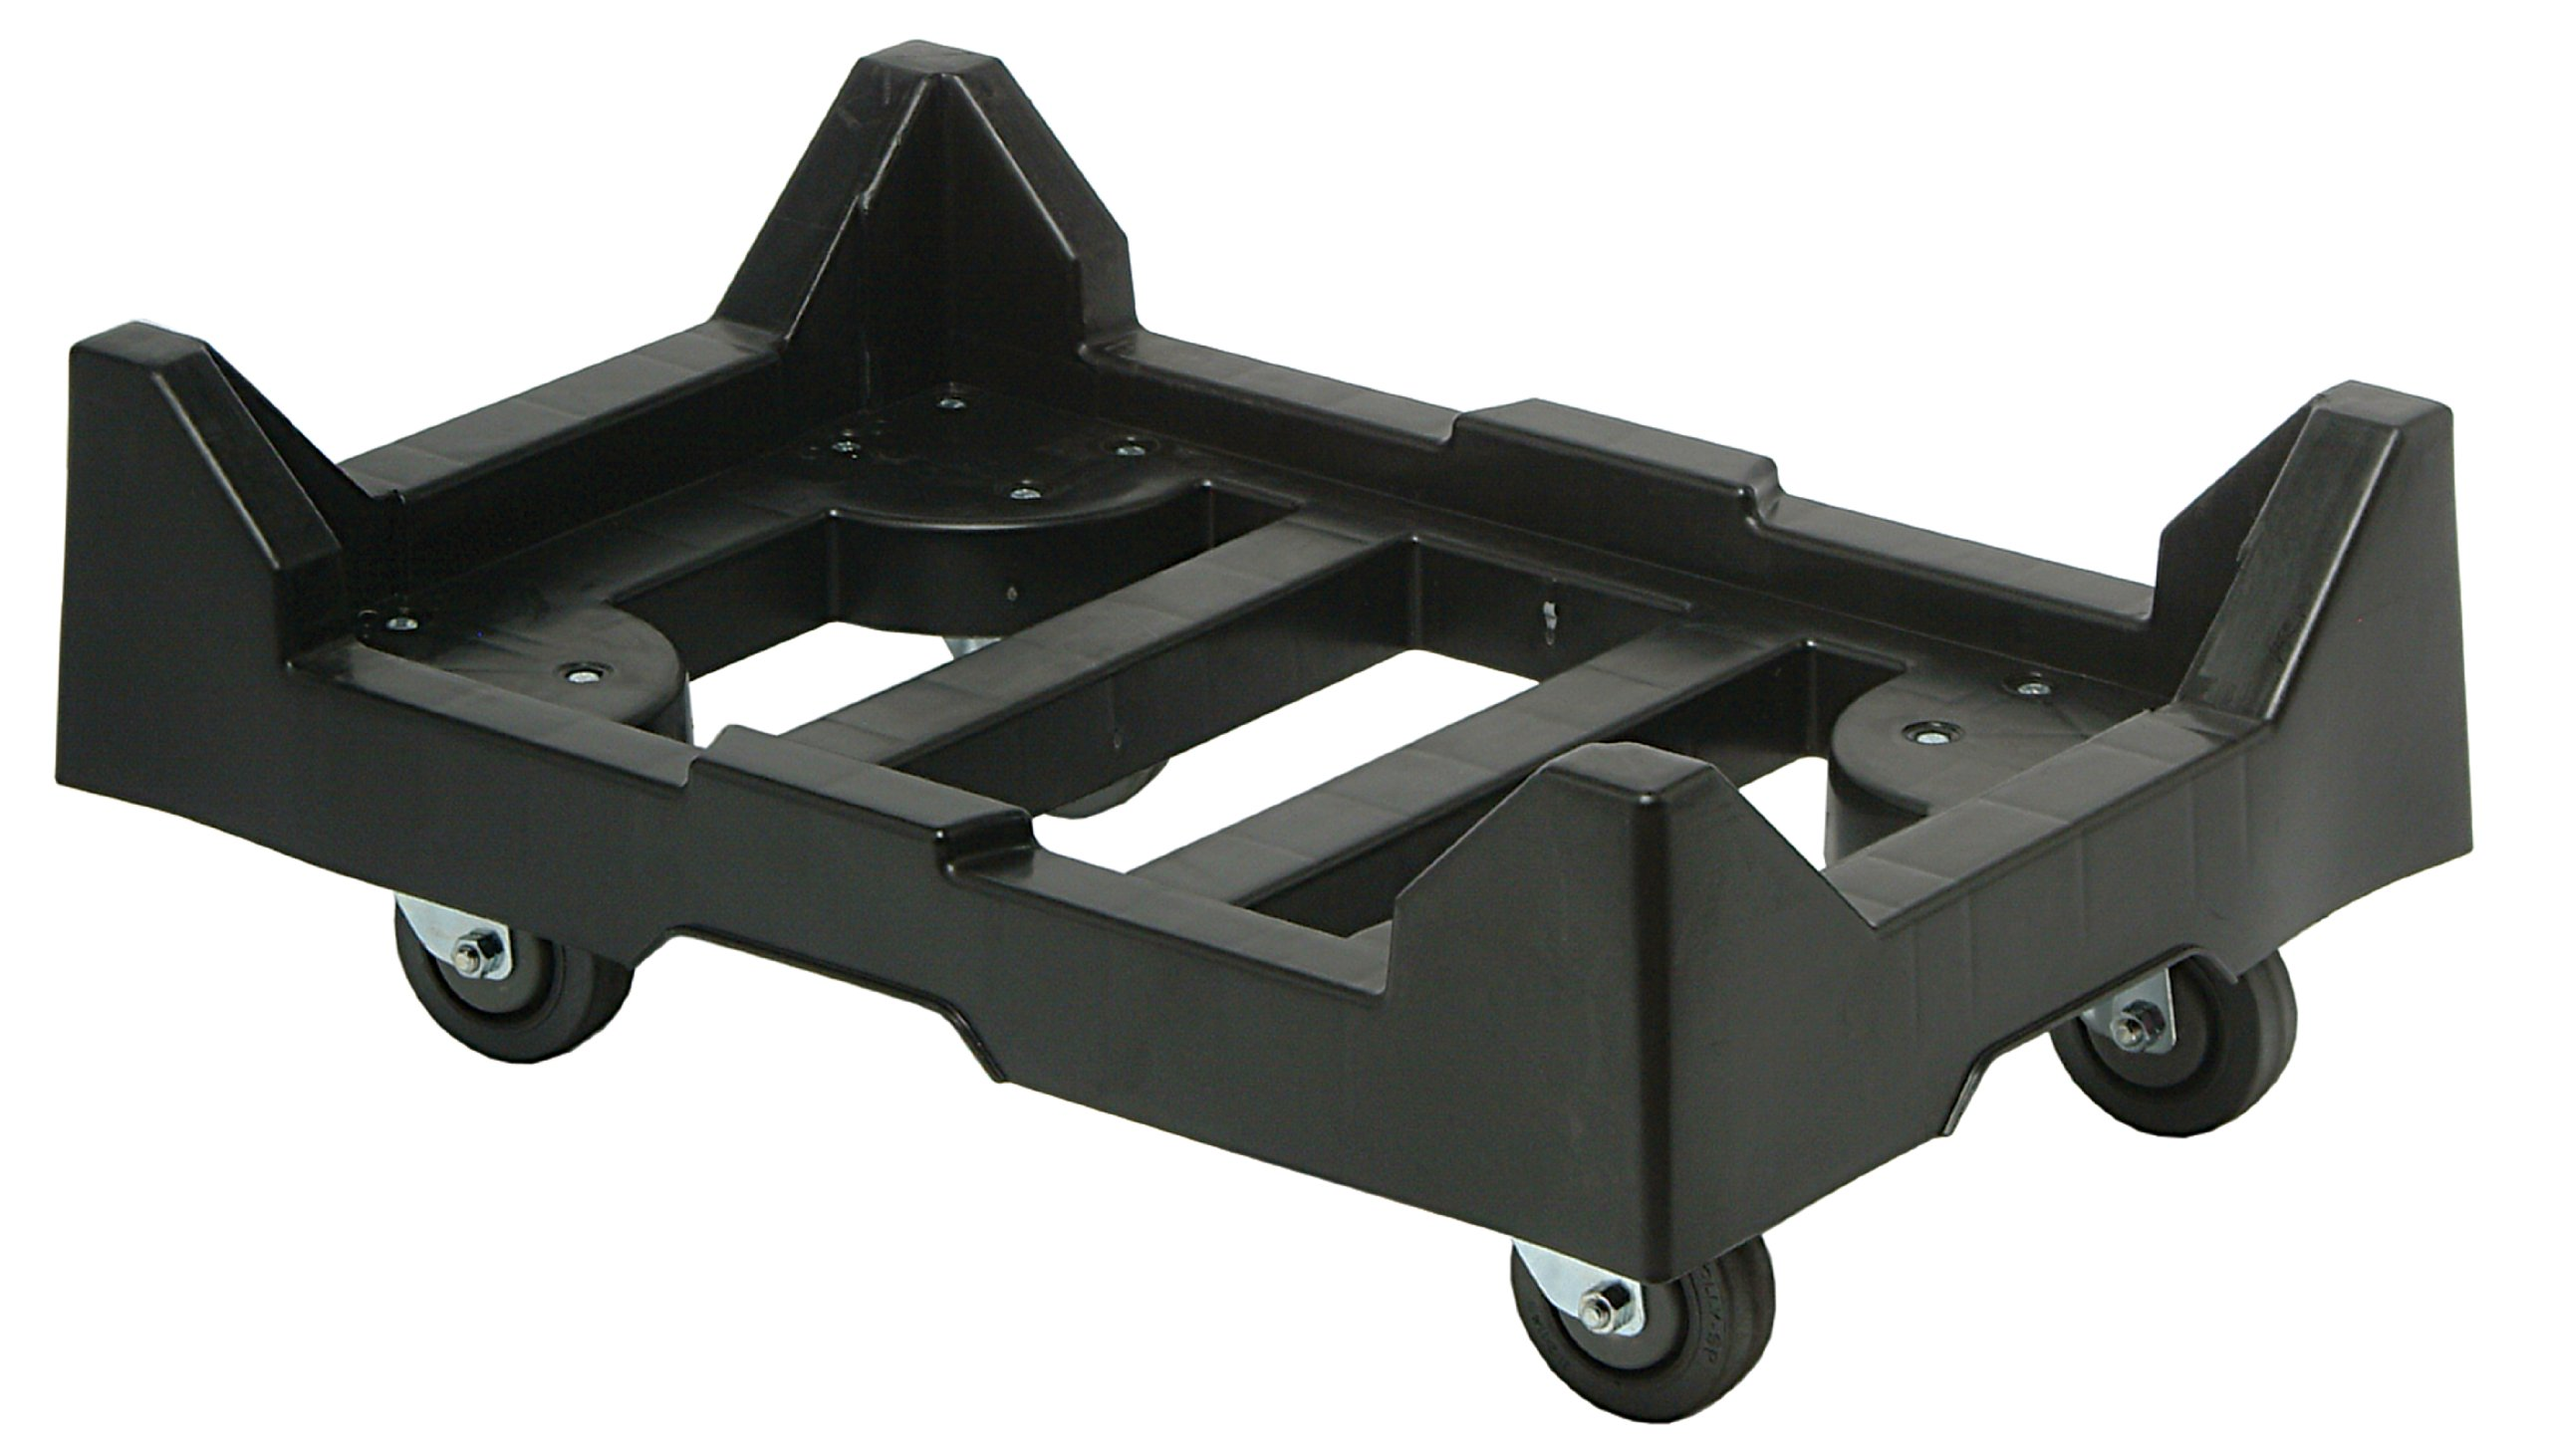 Quantum DLY-2415 Plastic 24-Inch by 15-Inch Dolly with 1-Inch Ledge, Black